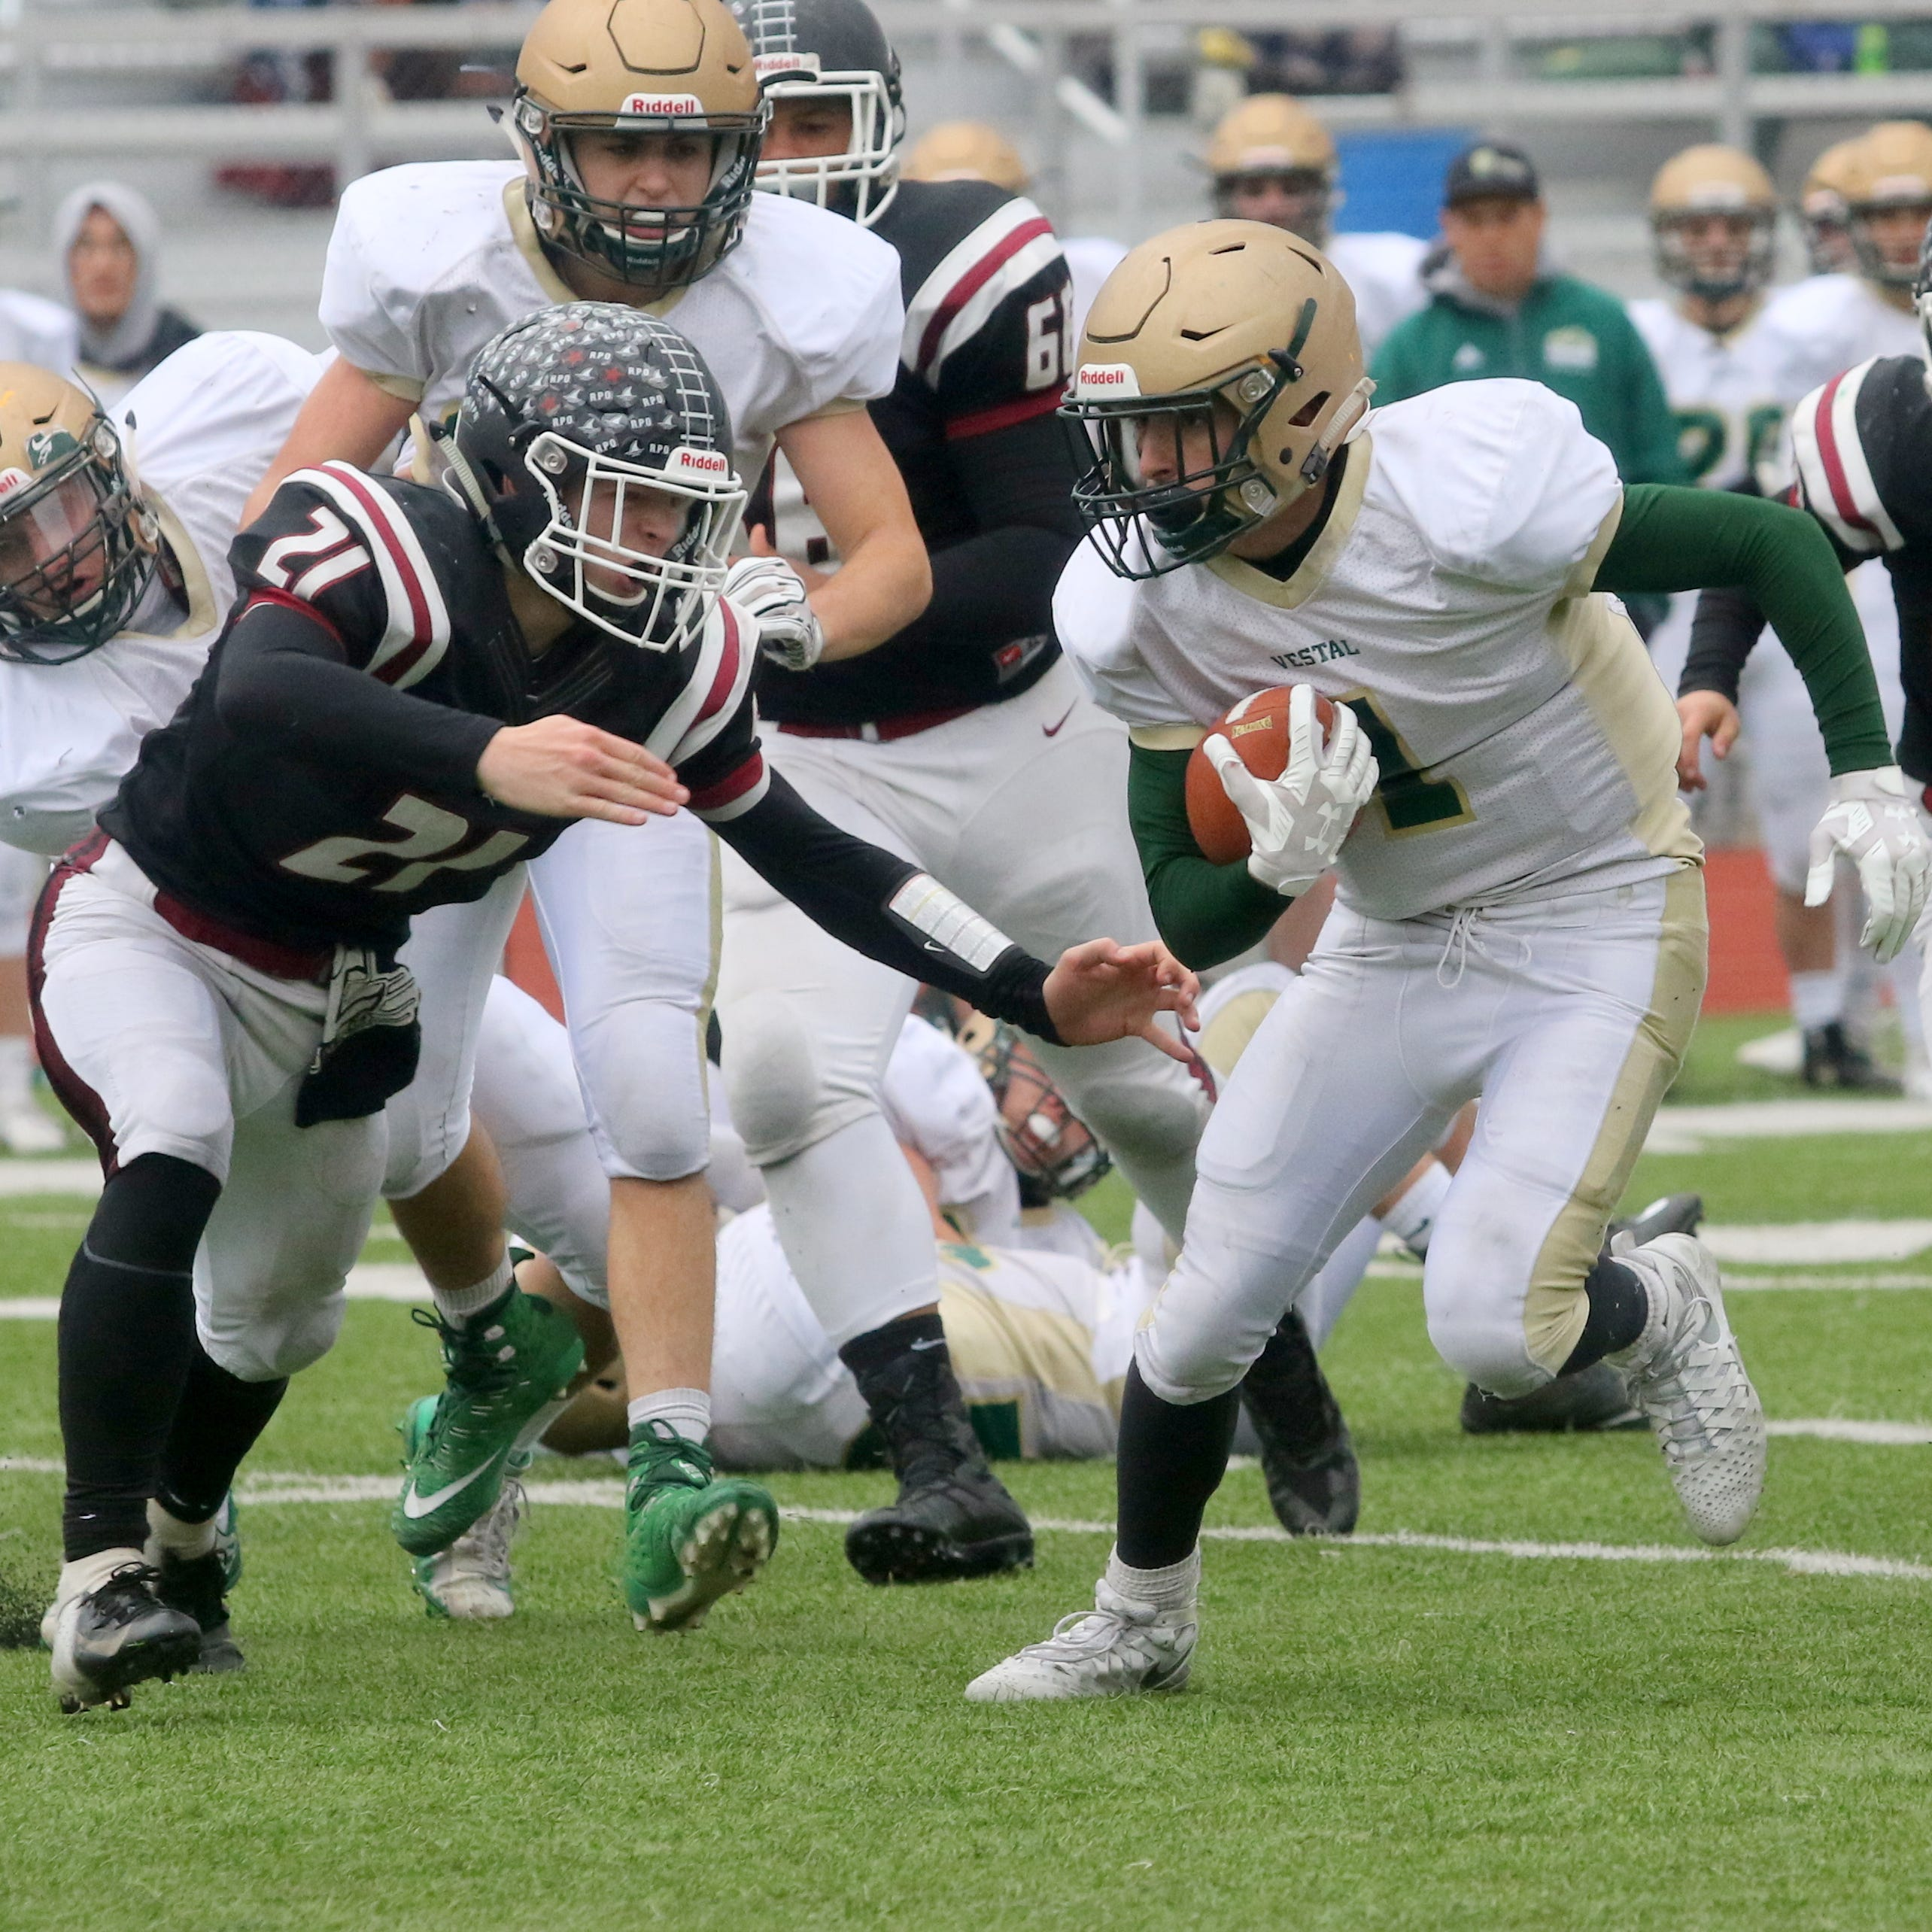 Vestal deals Elmira first loss behind 200-yard day from Matt Thrasher